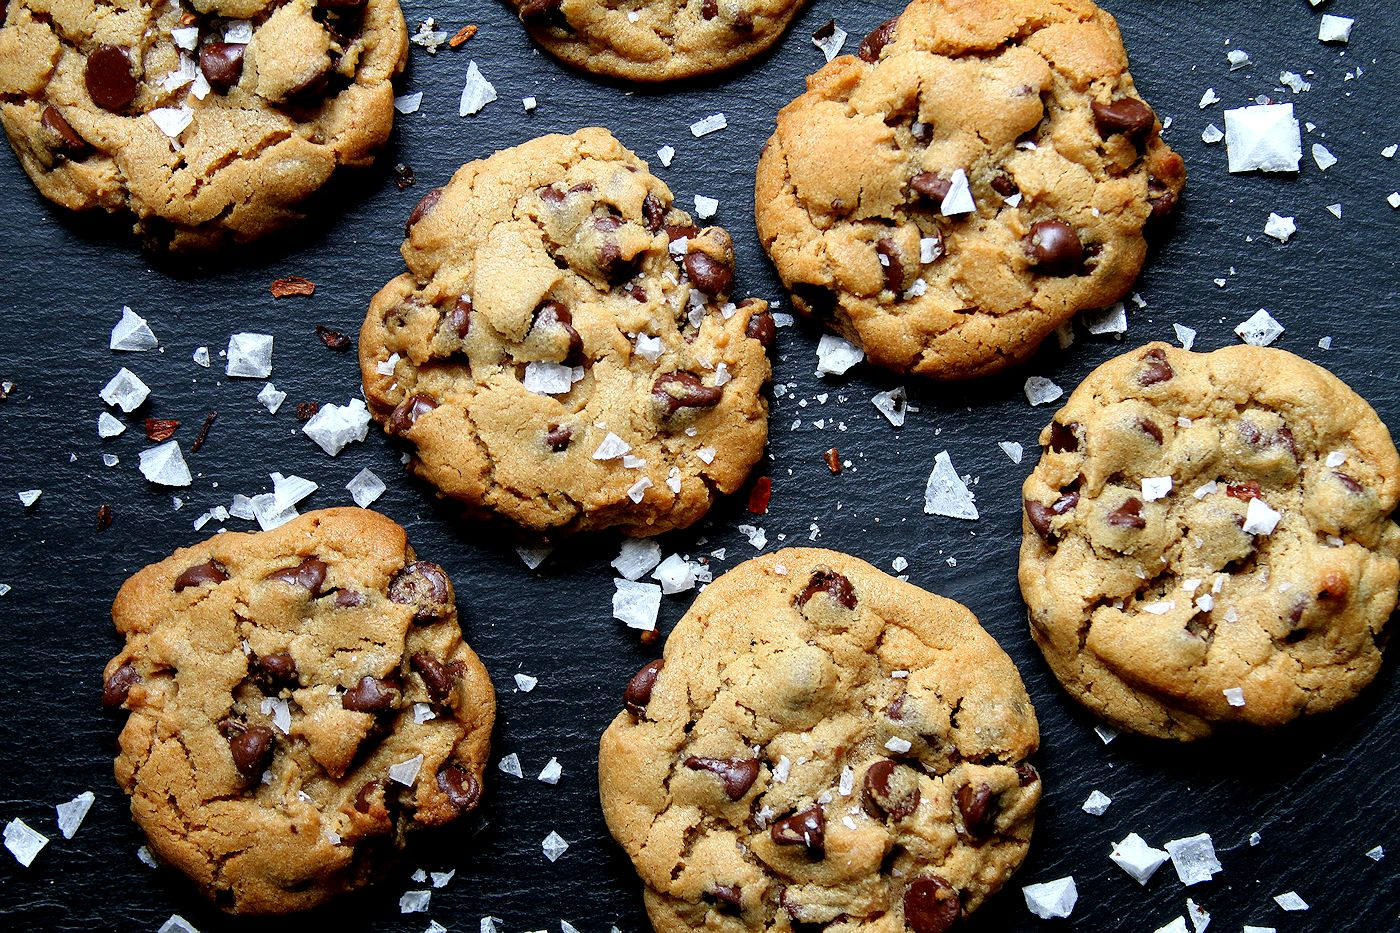 Spicy Peanut Butter Chocolate Chip Cookies with Chipotle Sea Salt ...